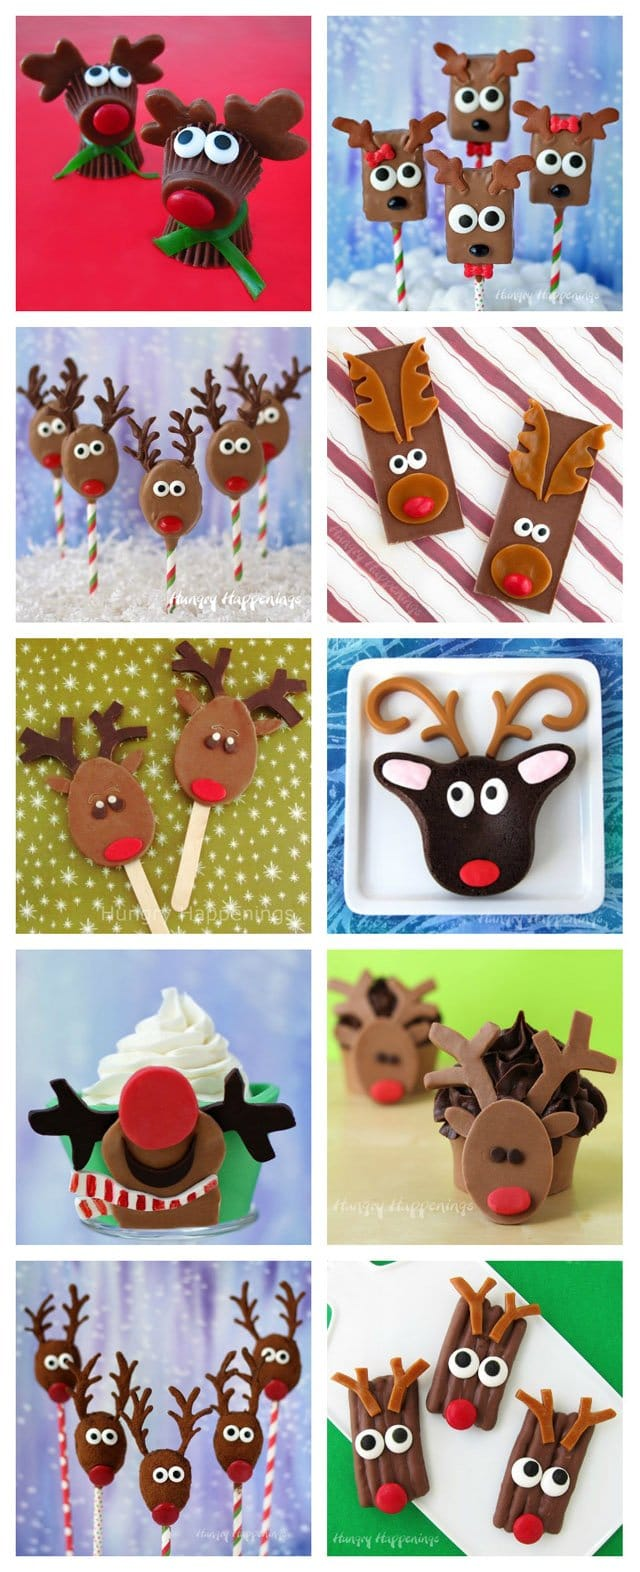 This Christmas have fun in the kitchen making and decorating reindeer food crafts and holiday treats.